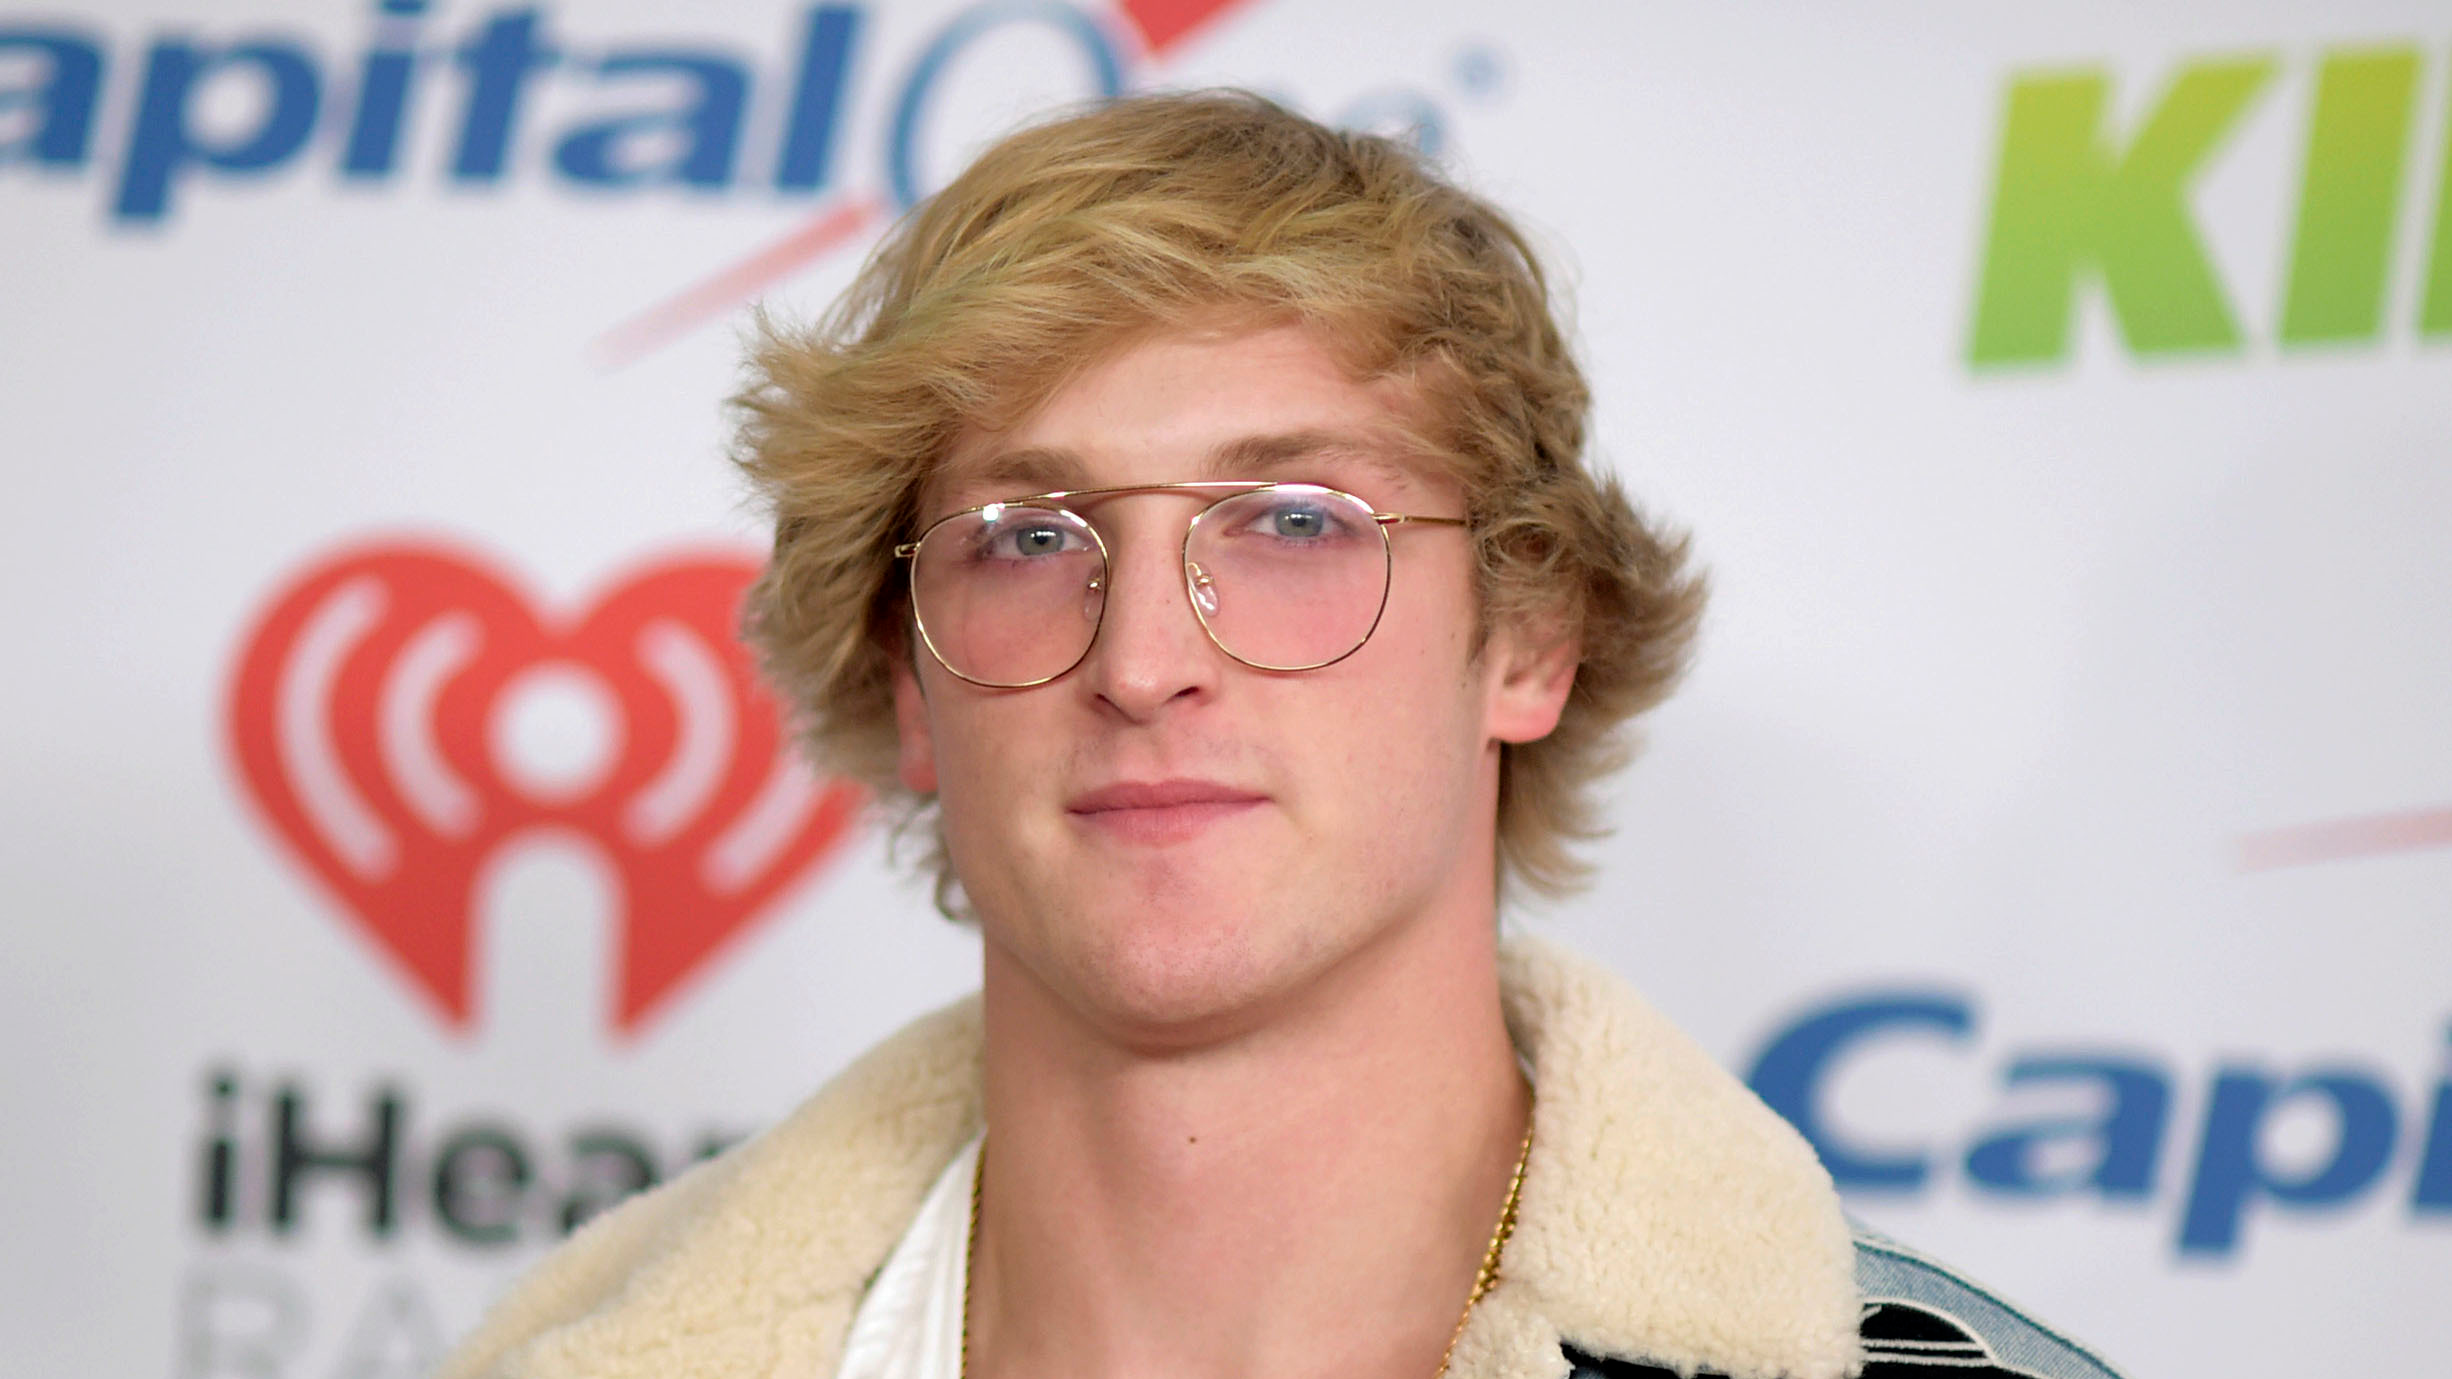 Logan Paul Is Back To His Old Tricks After Going In On The Tide Pod Challenge